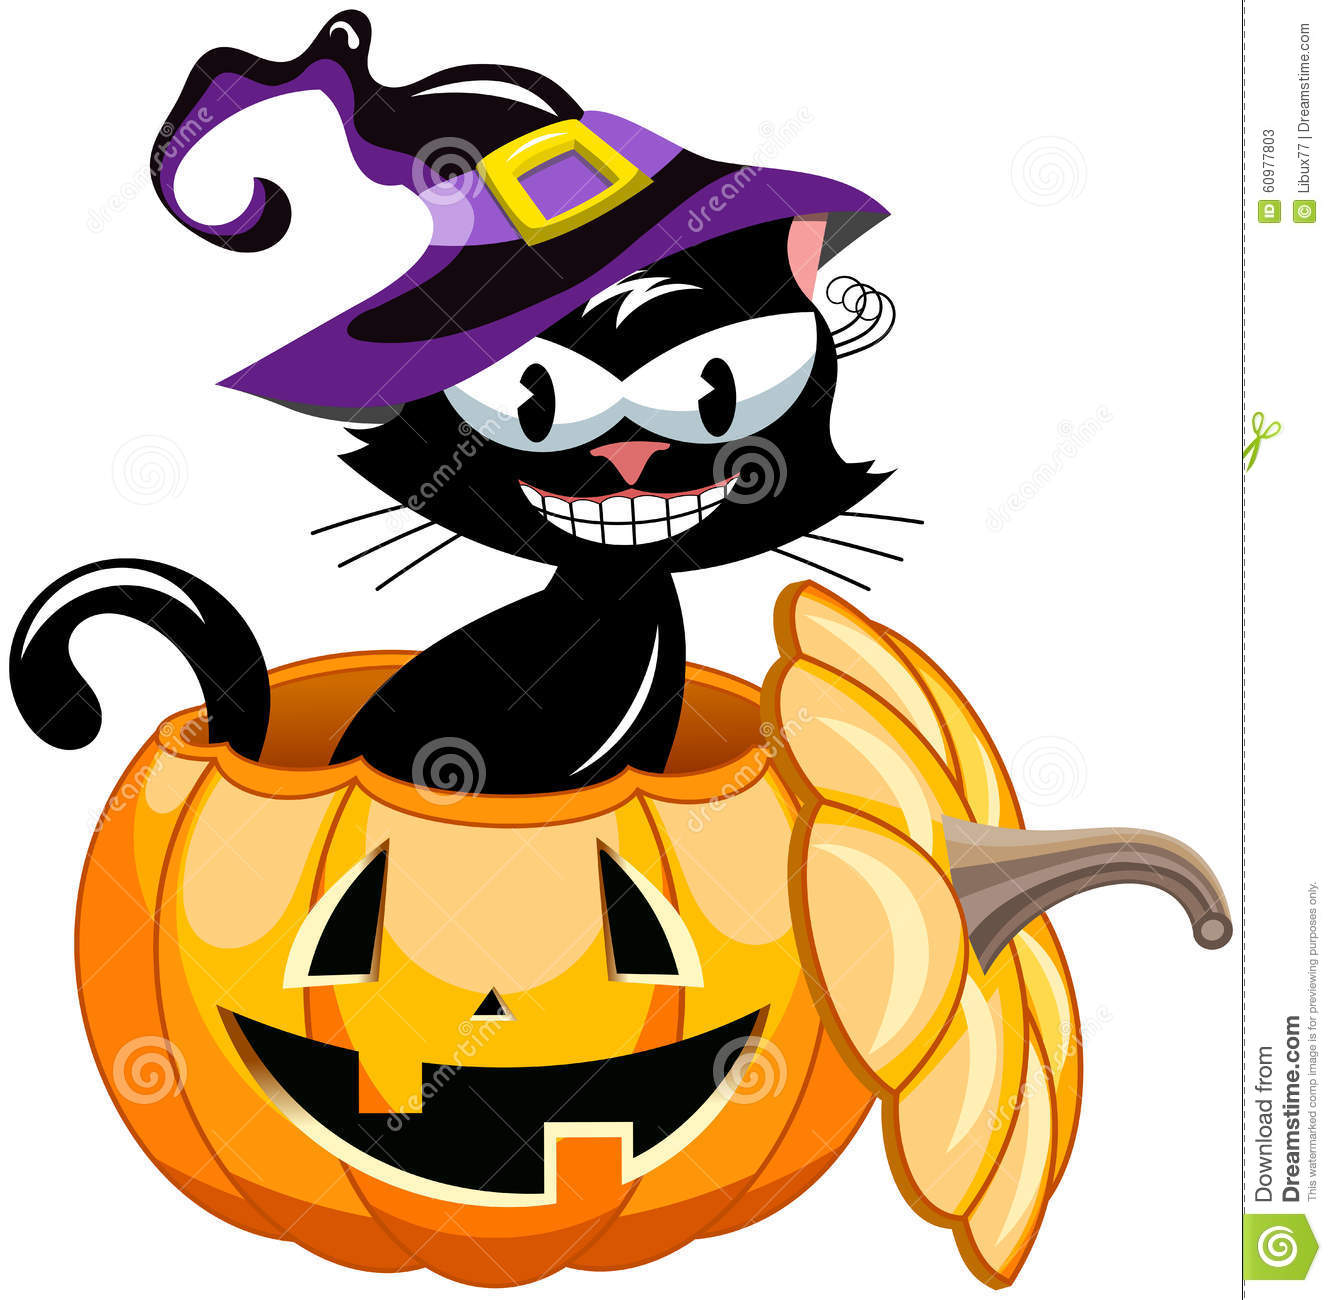 Halloween Witch Pictures Clip Art Auto Electrical Wiring Diagram Yale Mpb040 E Black Cat Inside Pumpkin Stock Vector